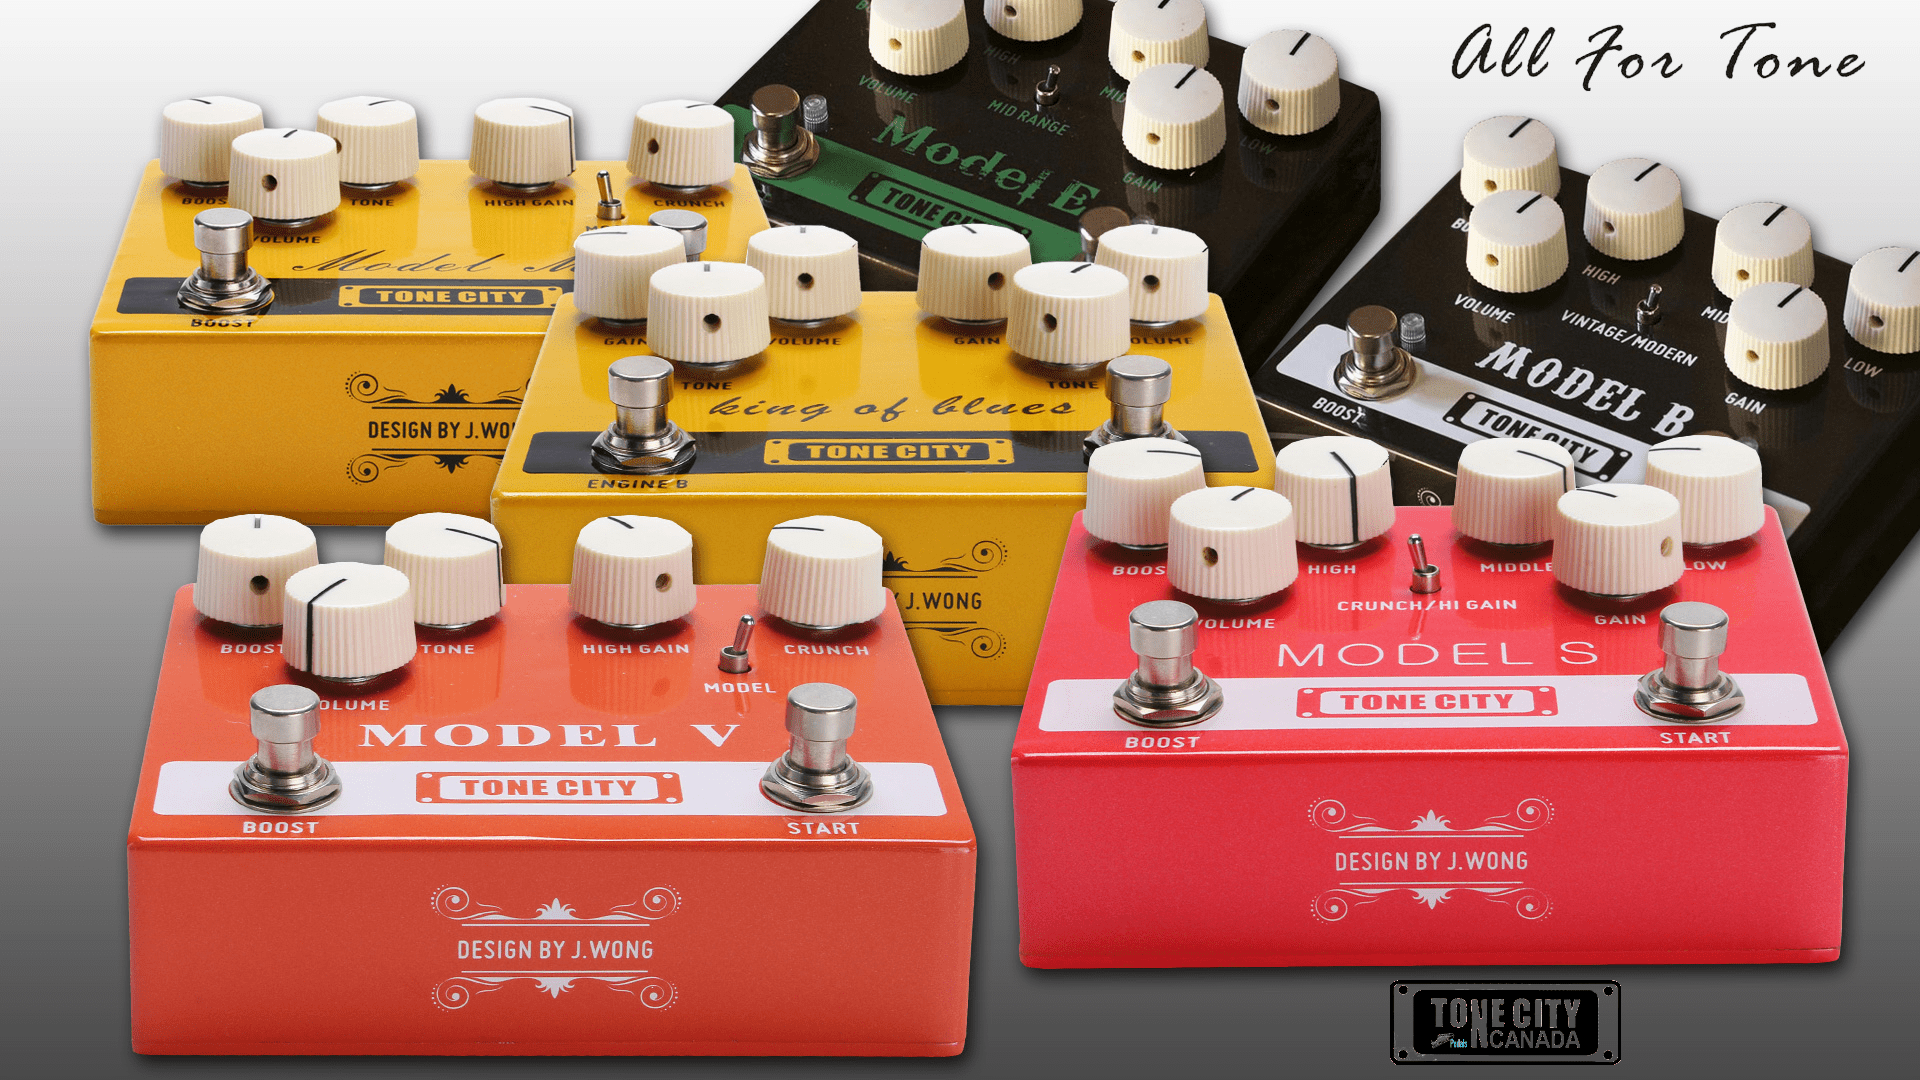 Tone City T33 Model V Distortion (Vox Style)